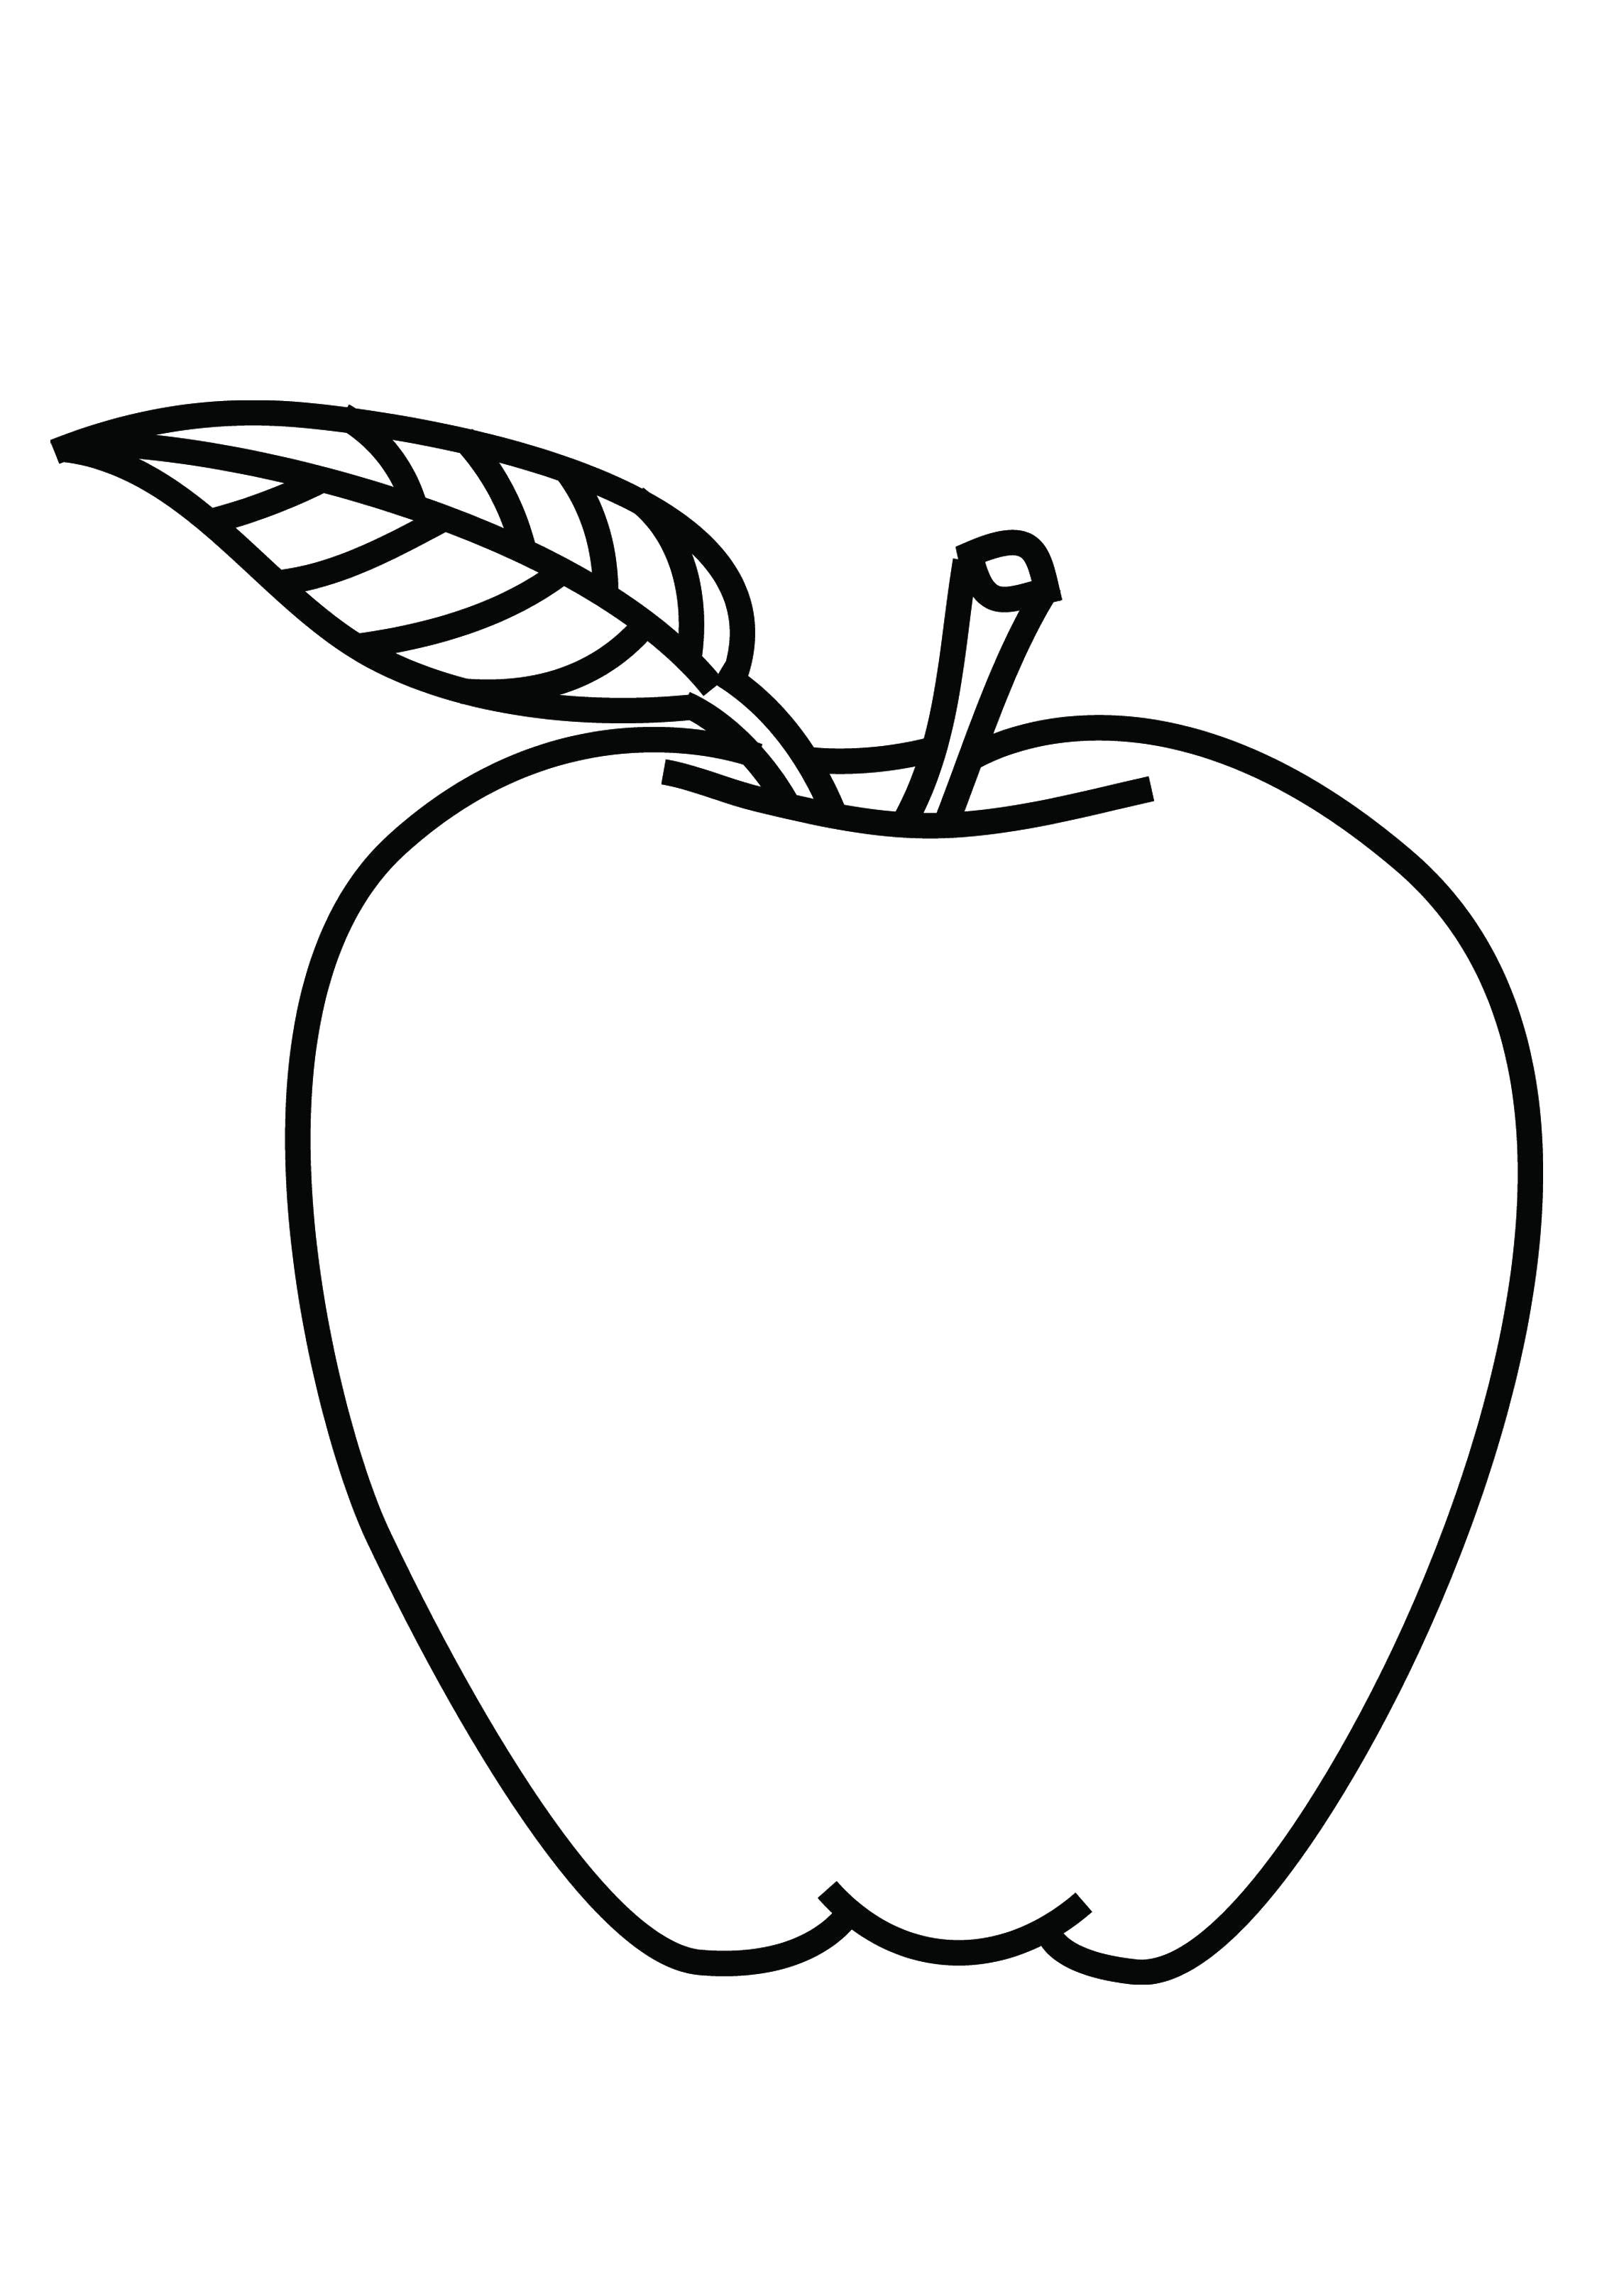 Line Drawing Kindergarten : Sketches of apple drawing for kindergarten student